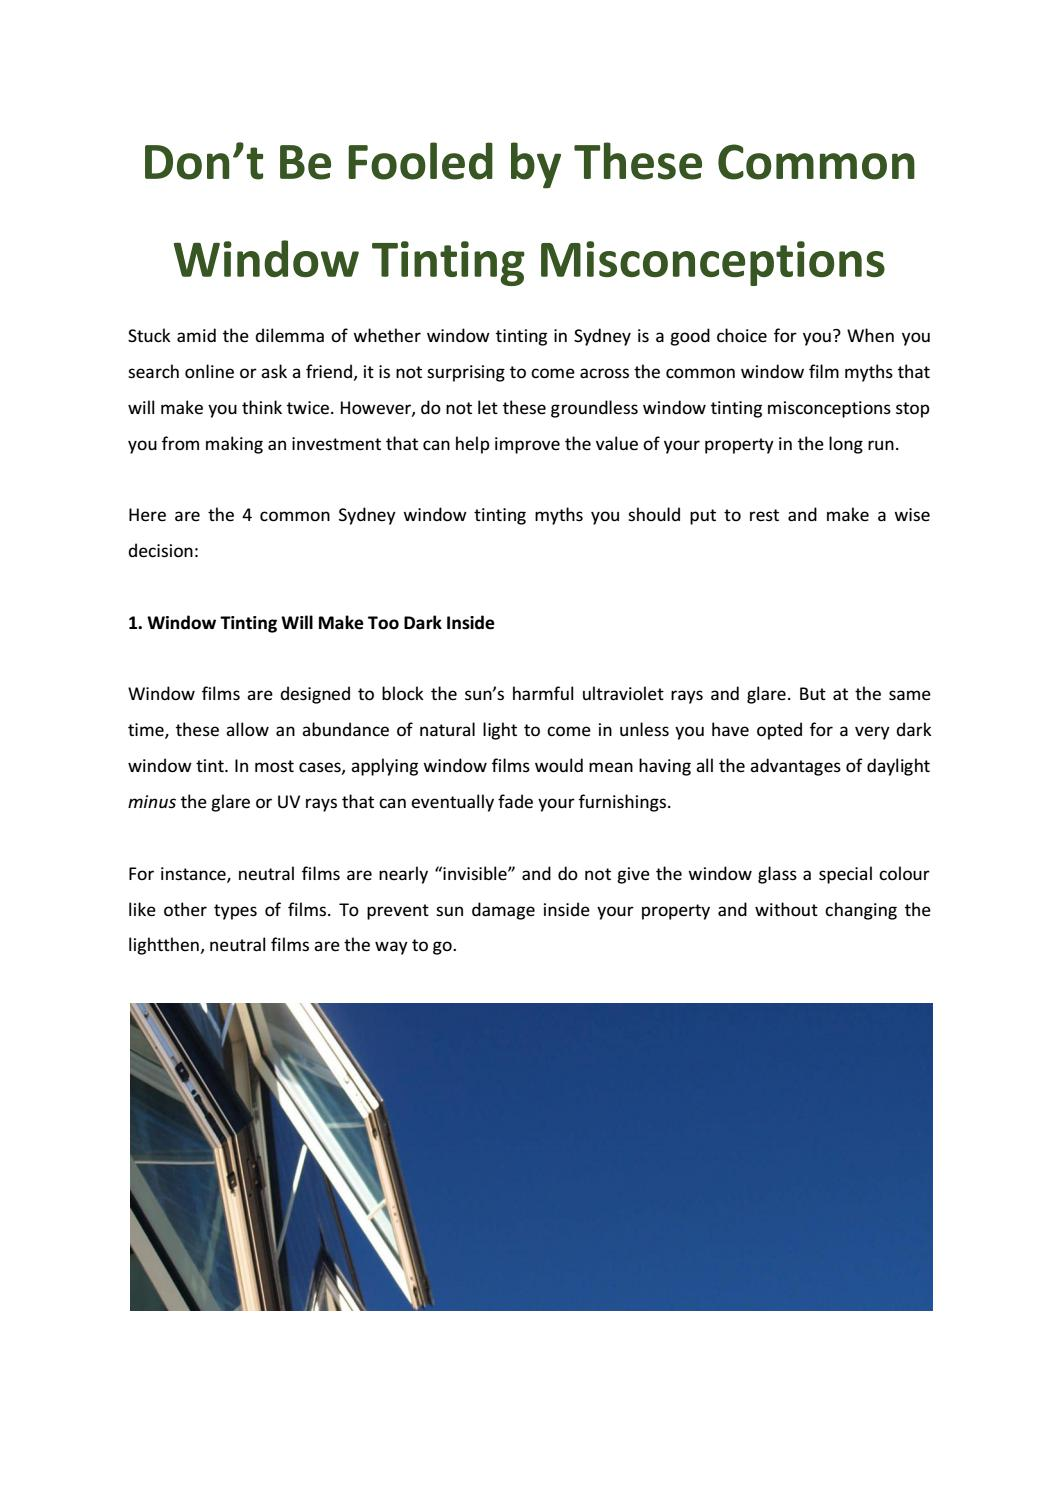 Don't Be Fooled by These Common Window Tinting Misconceptions